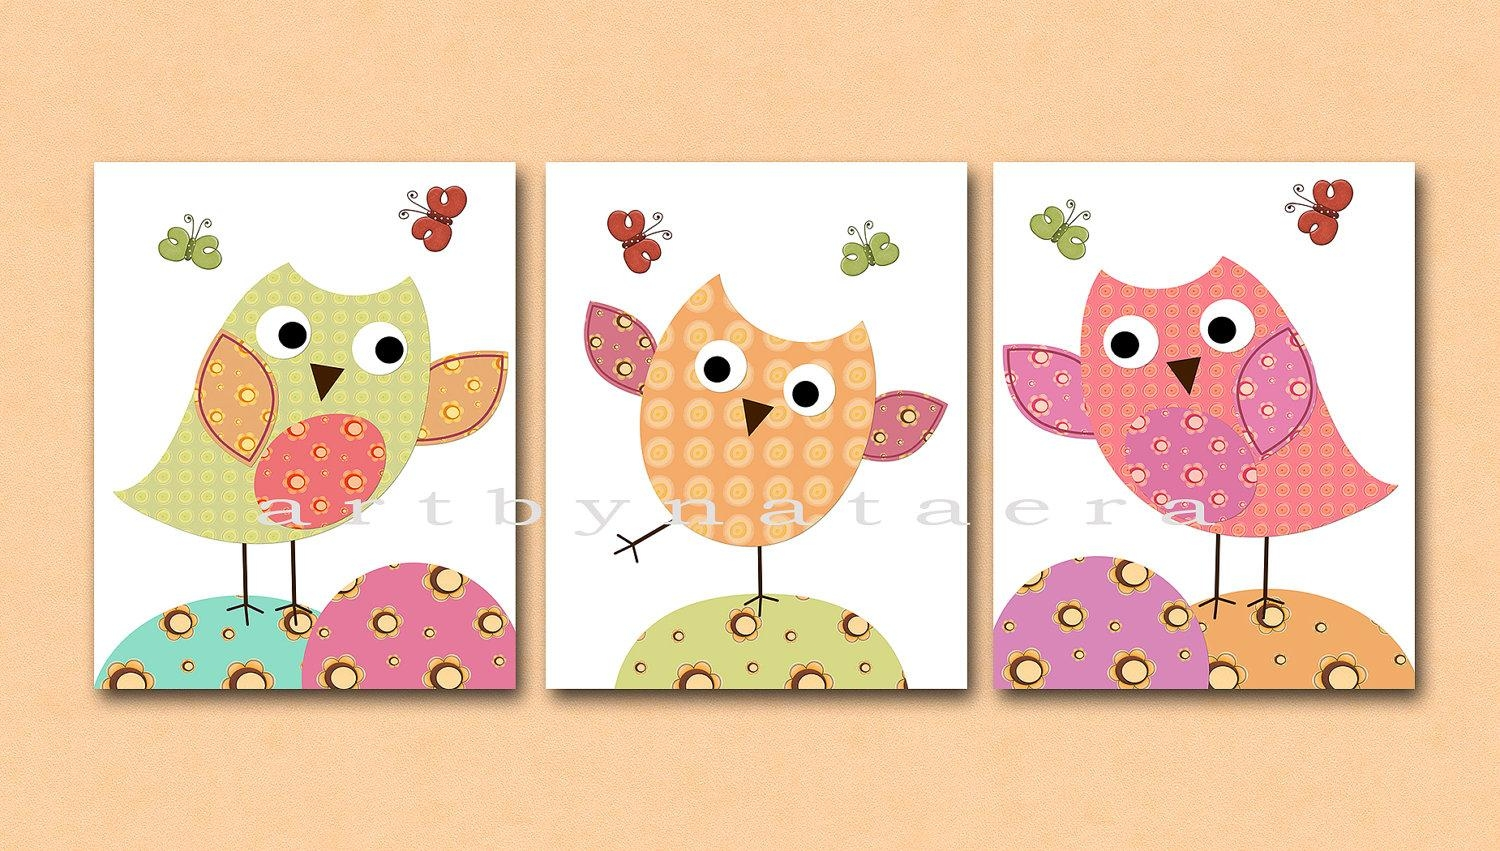 Childrens Wall Art Prints - Elitflat